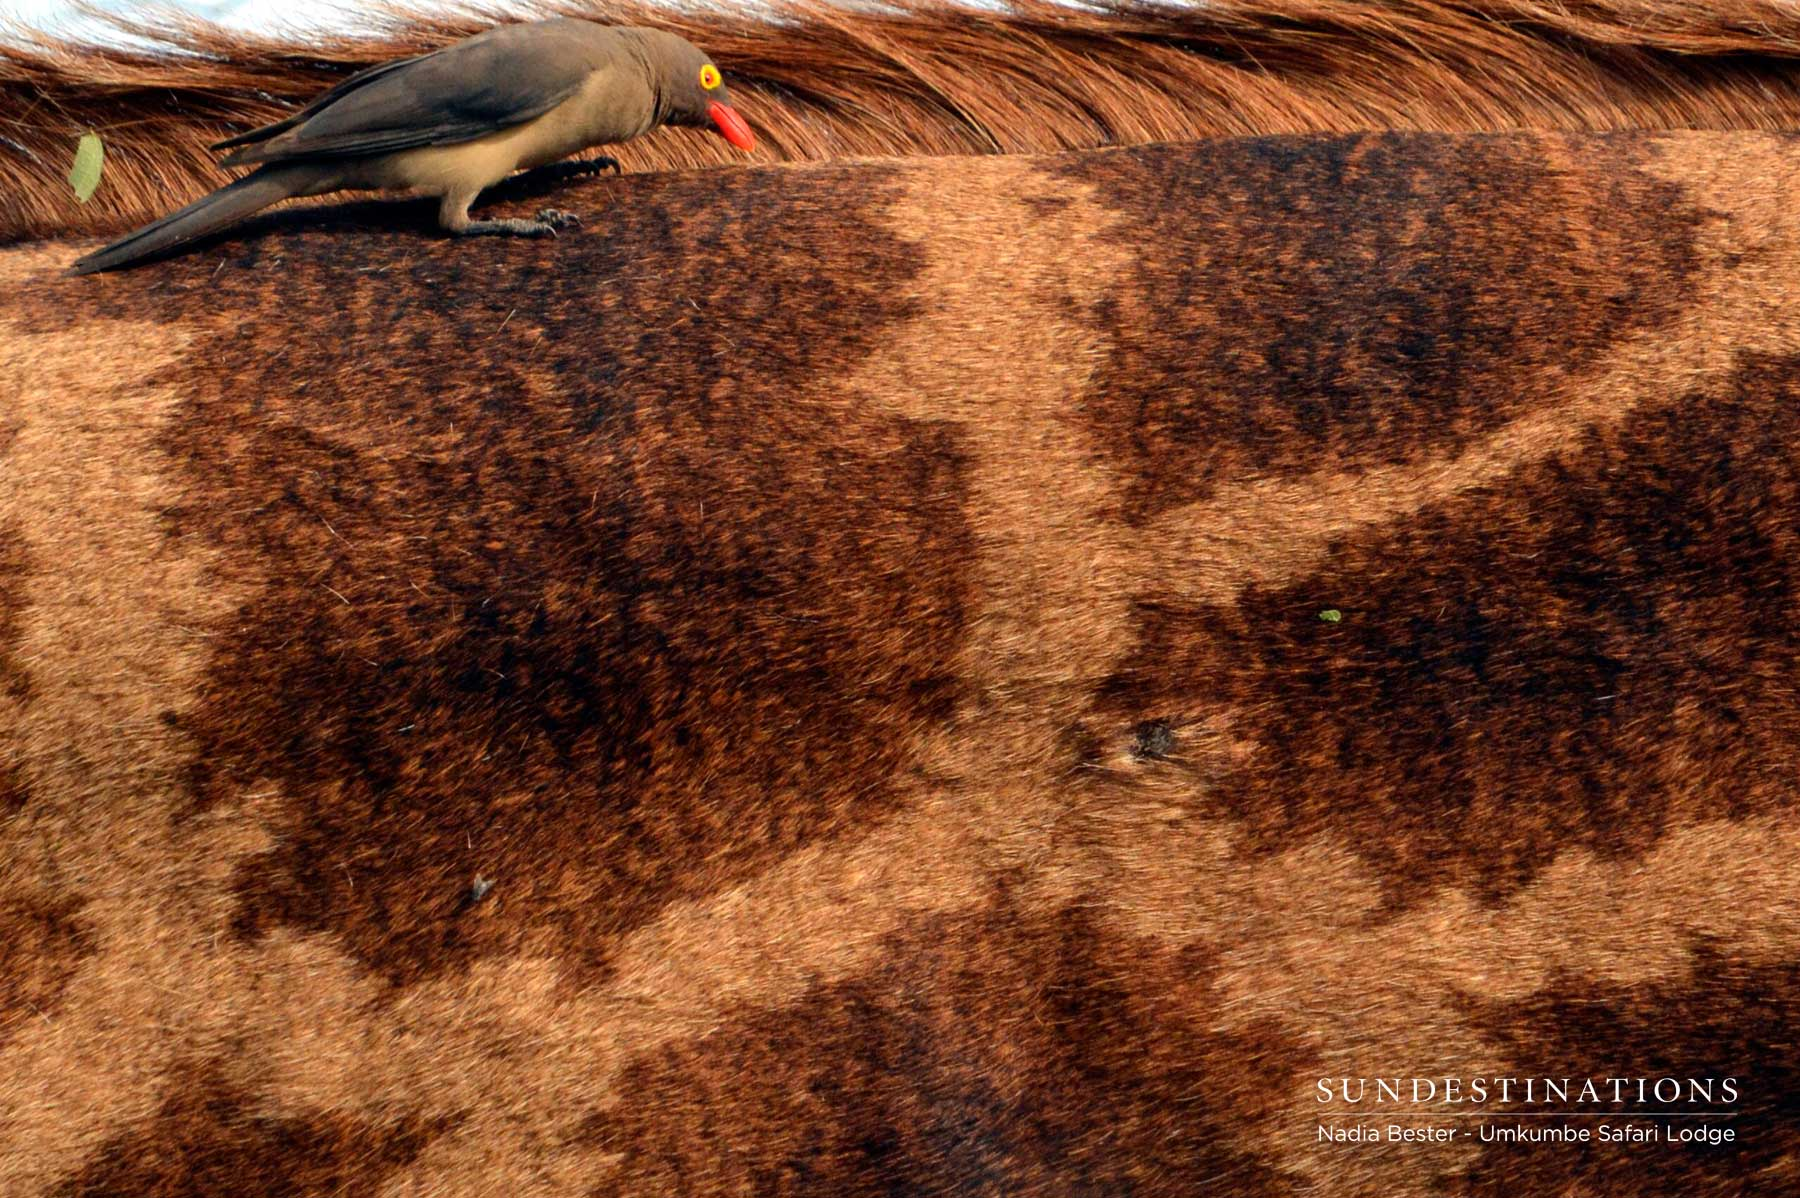 Oxpecker on Giraffe